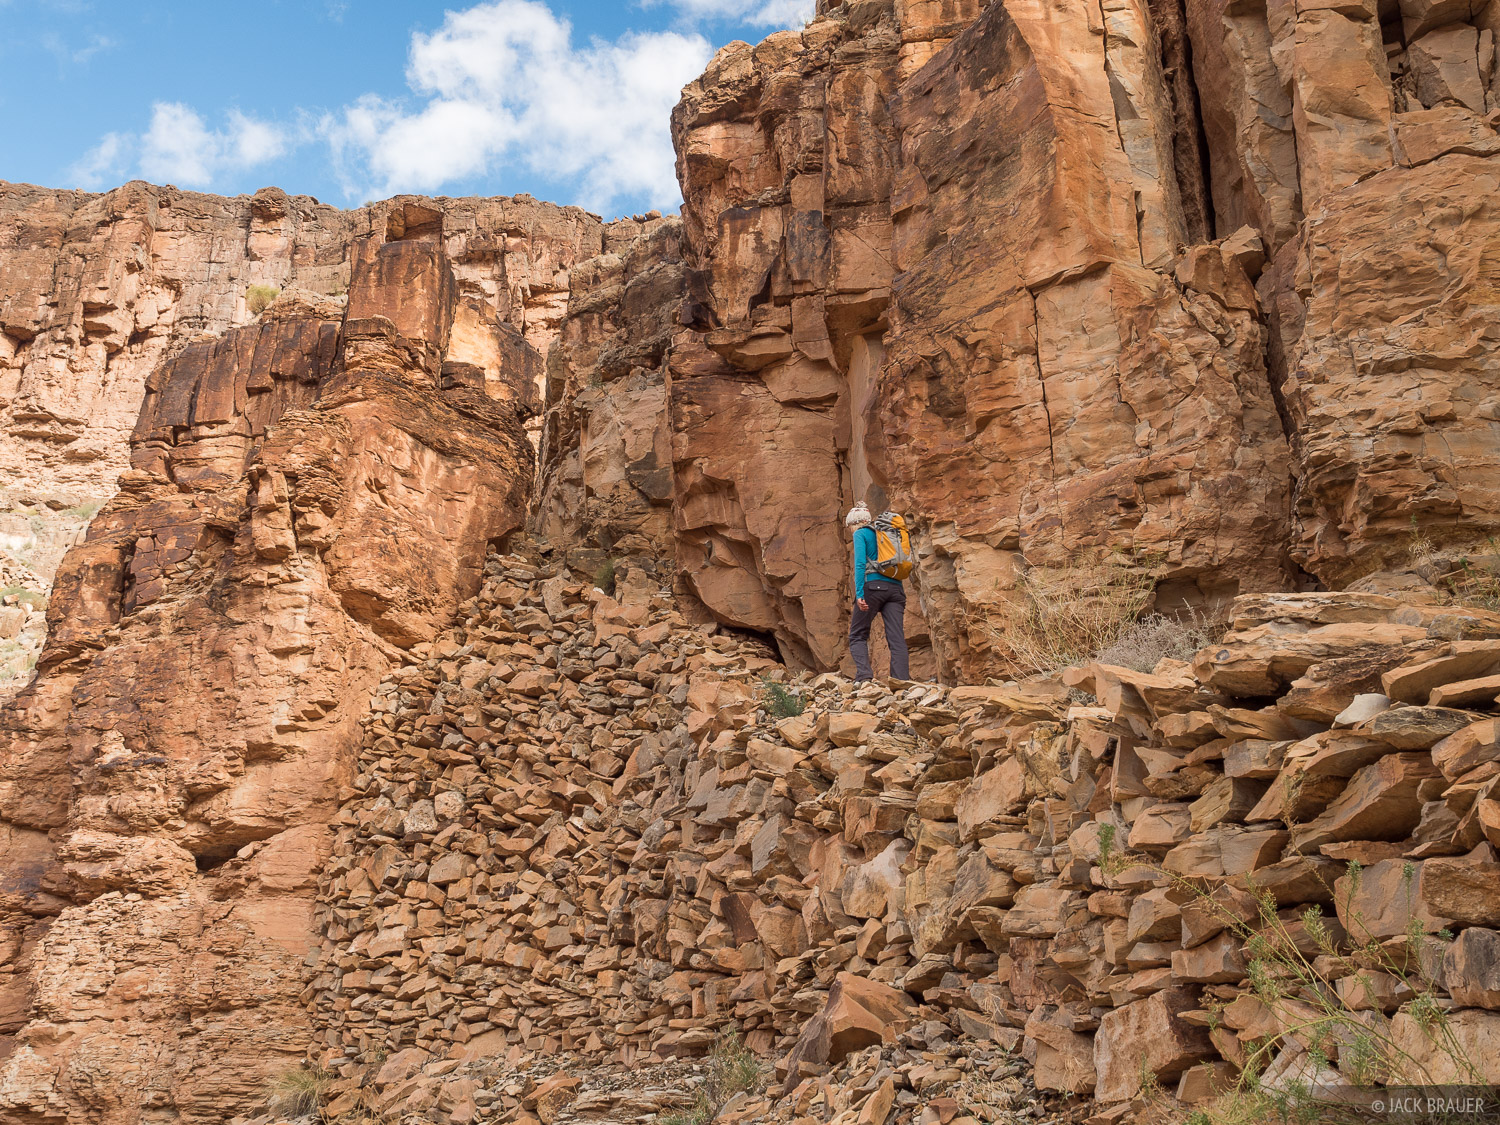 Meticulously stacked rocks provide a ramp to bypass an otherwise impassible cliff band along the Honaker Trail.